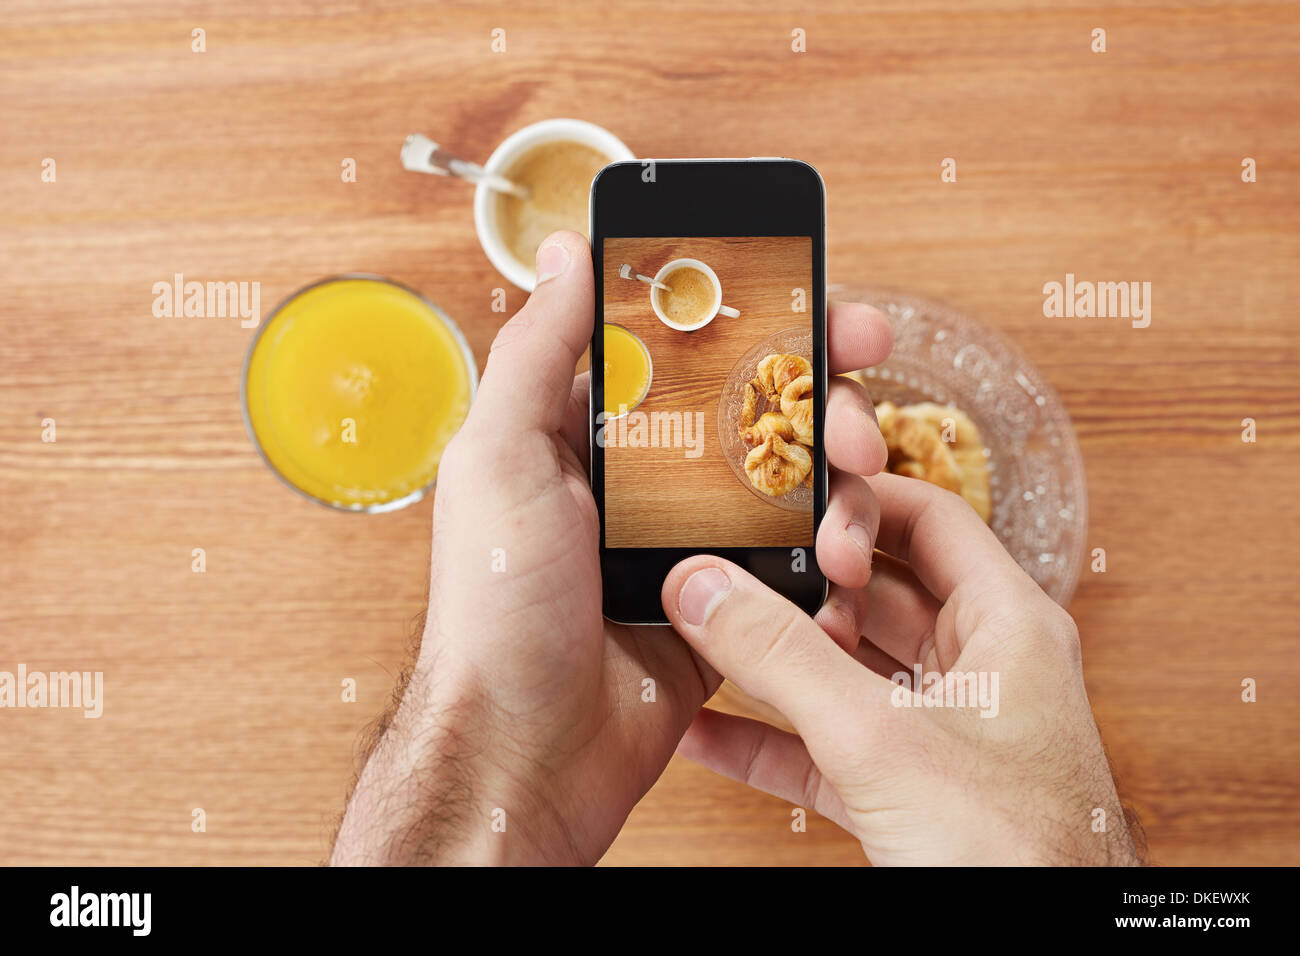 Hands taking photo of breakfast including croissants, cofee and orange juice with smartphone - Stock Image